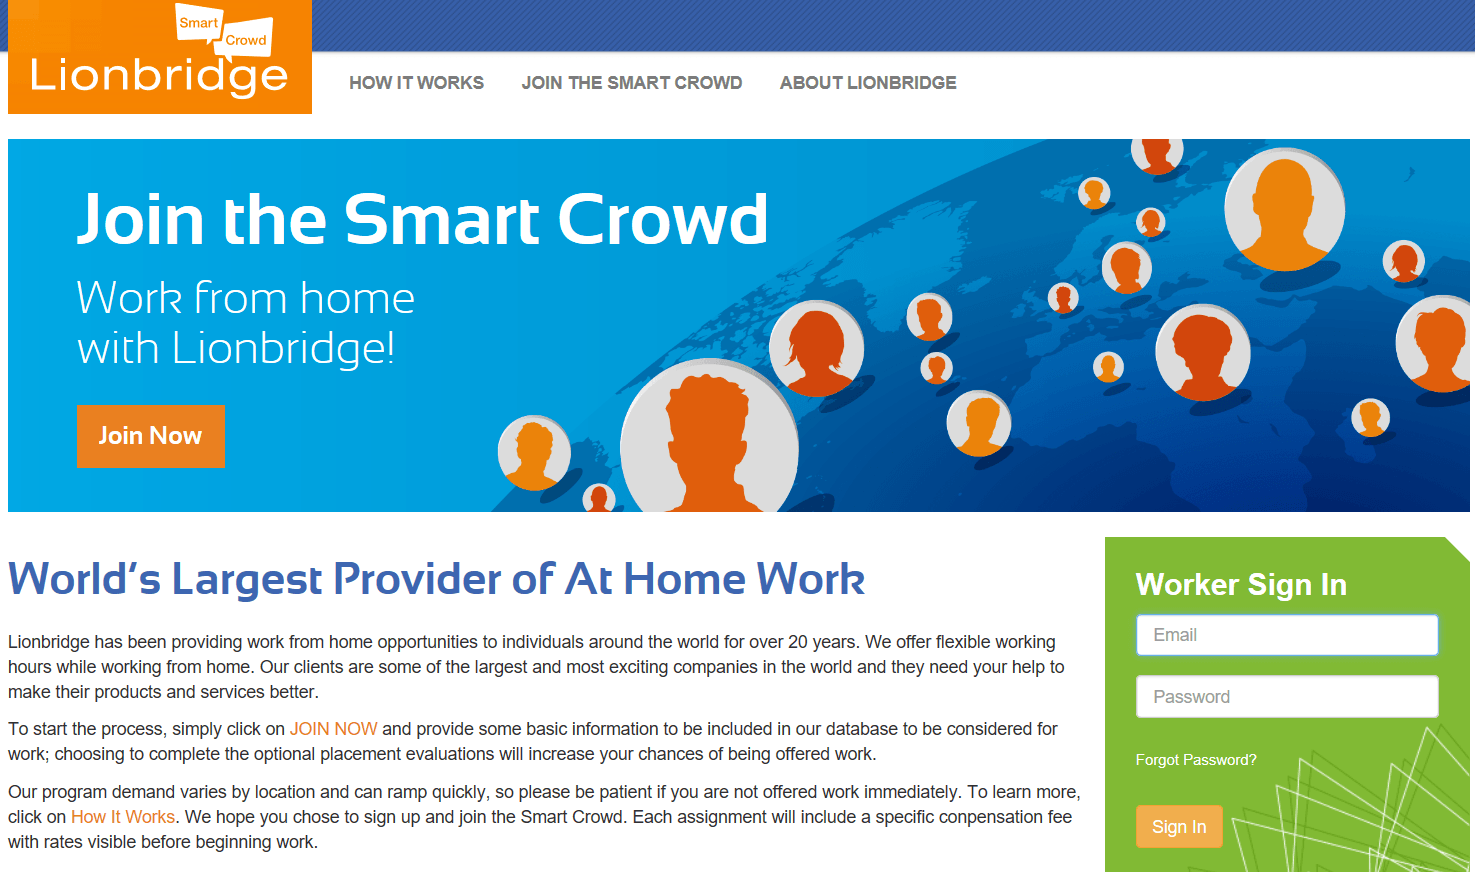 The Smart Crowd Landing Page